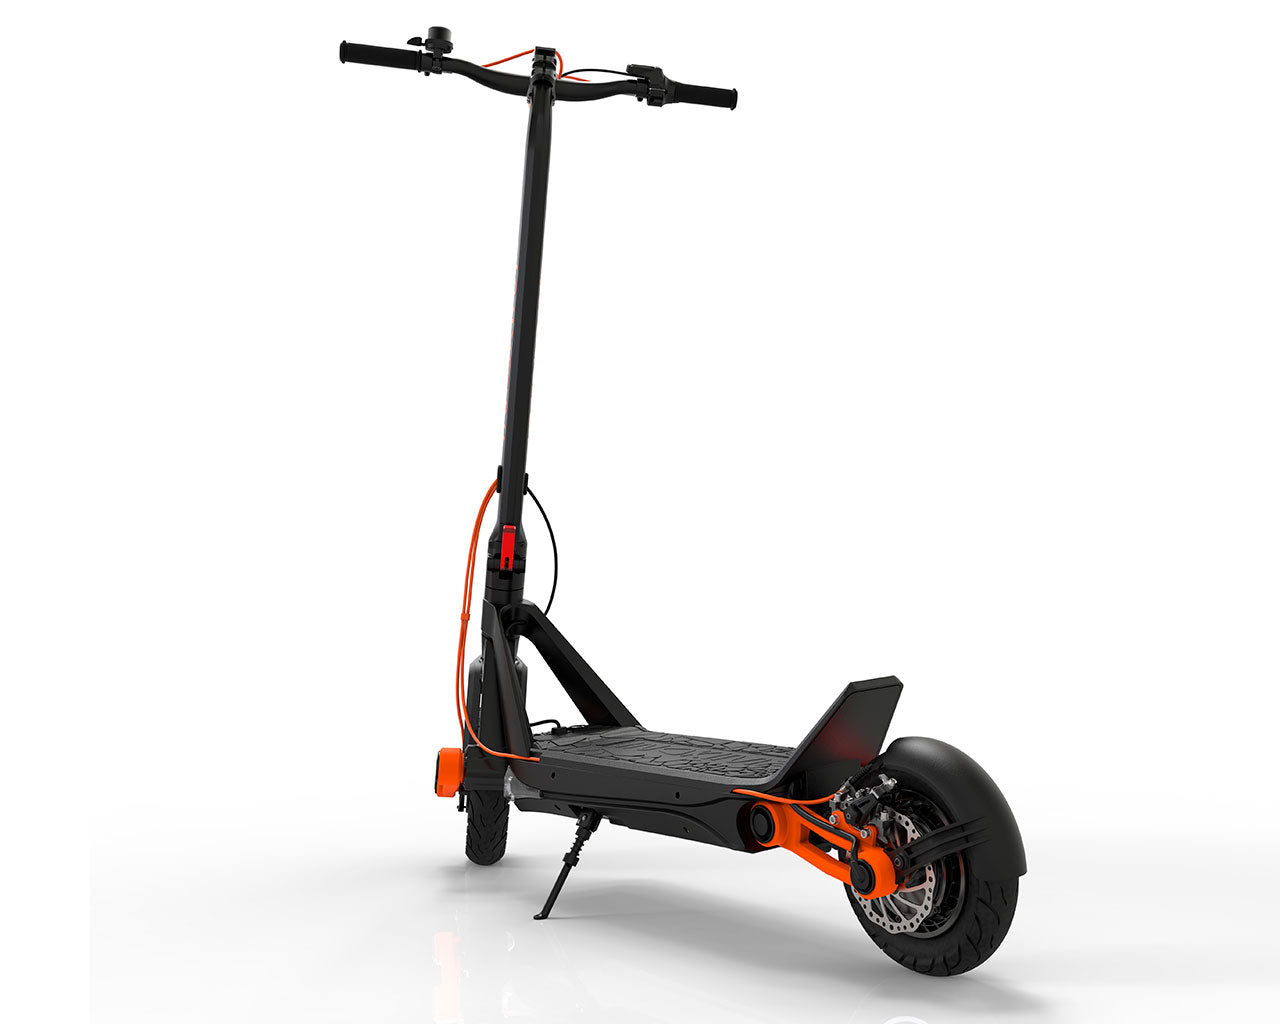 inokim ox electric scooter rear view suspension patented